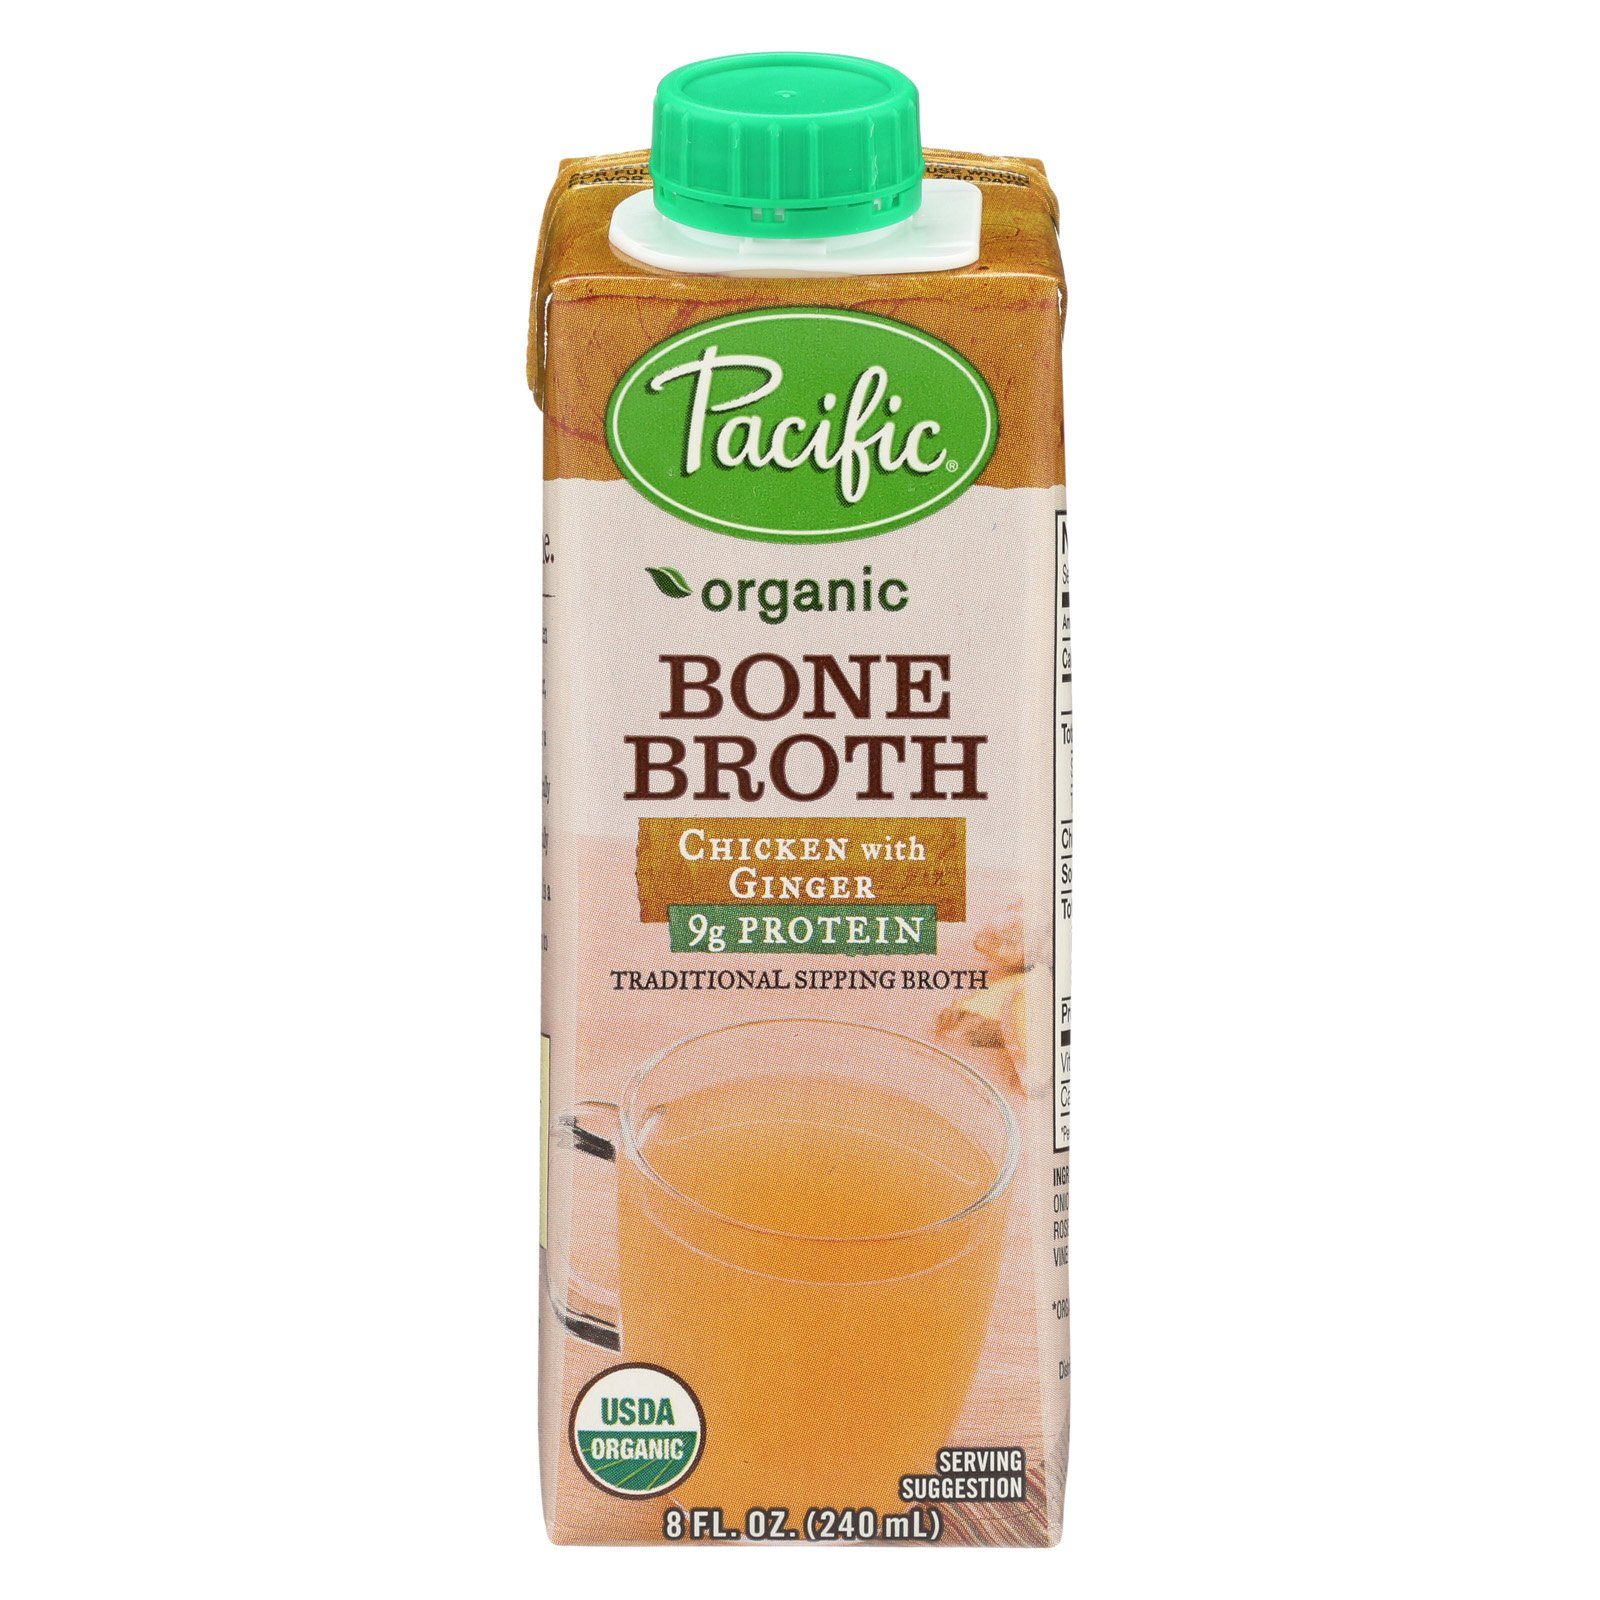 Pacific Natural Foods Bone Broth - Chicken with Ginger - Case of 12 - 8 Fl oz. by Pacific Natural Foods